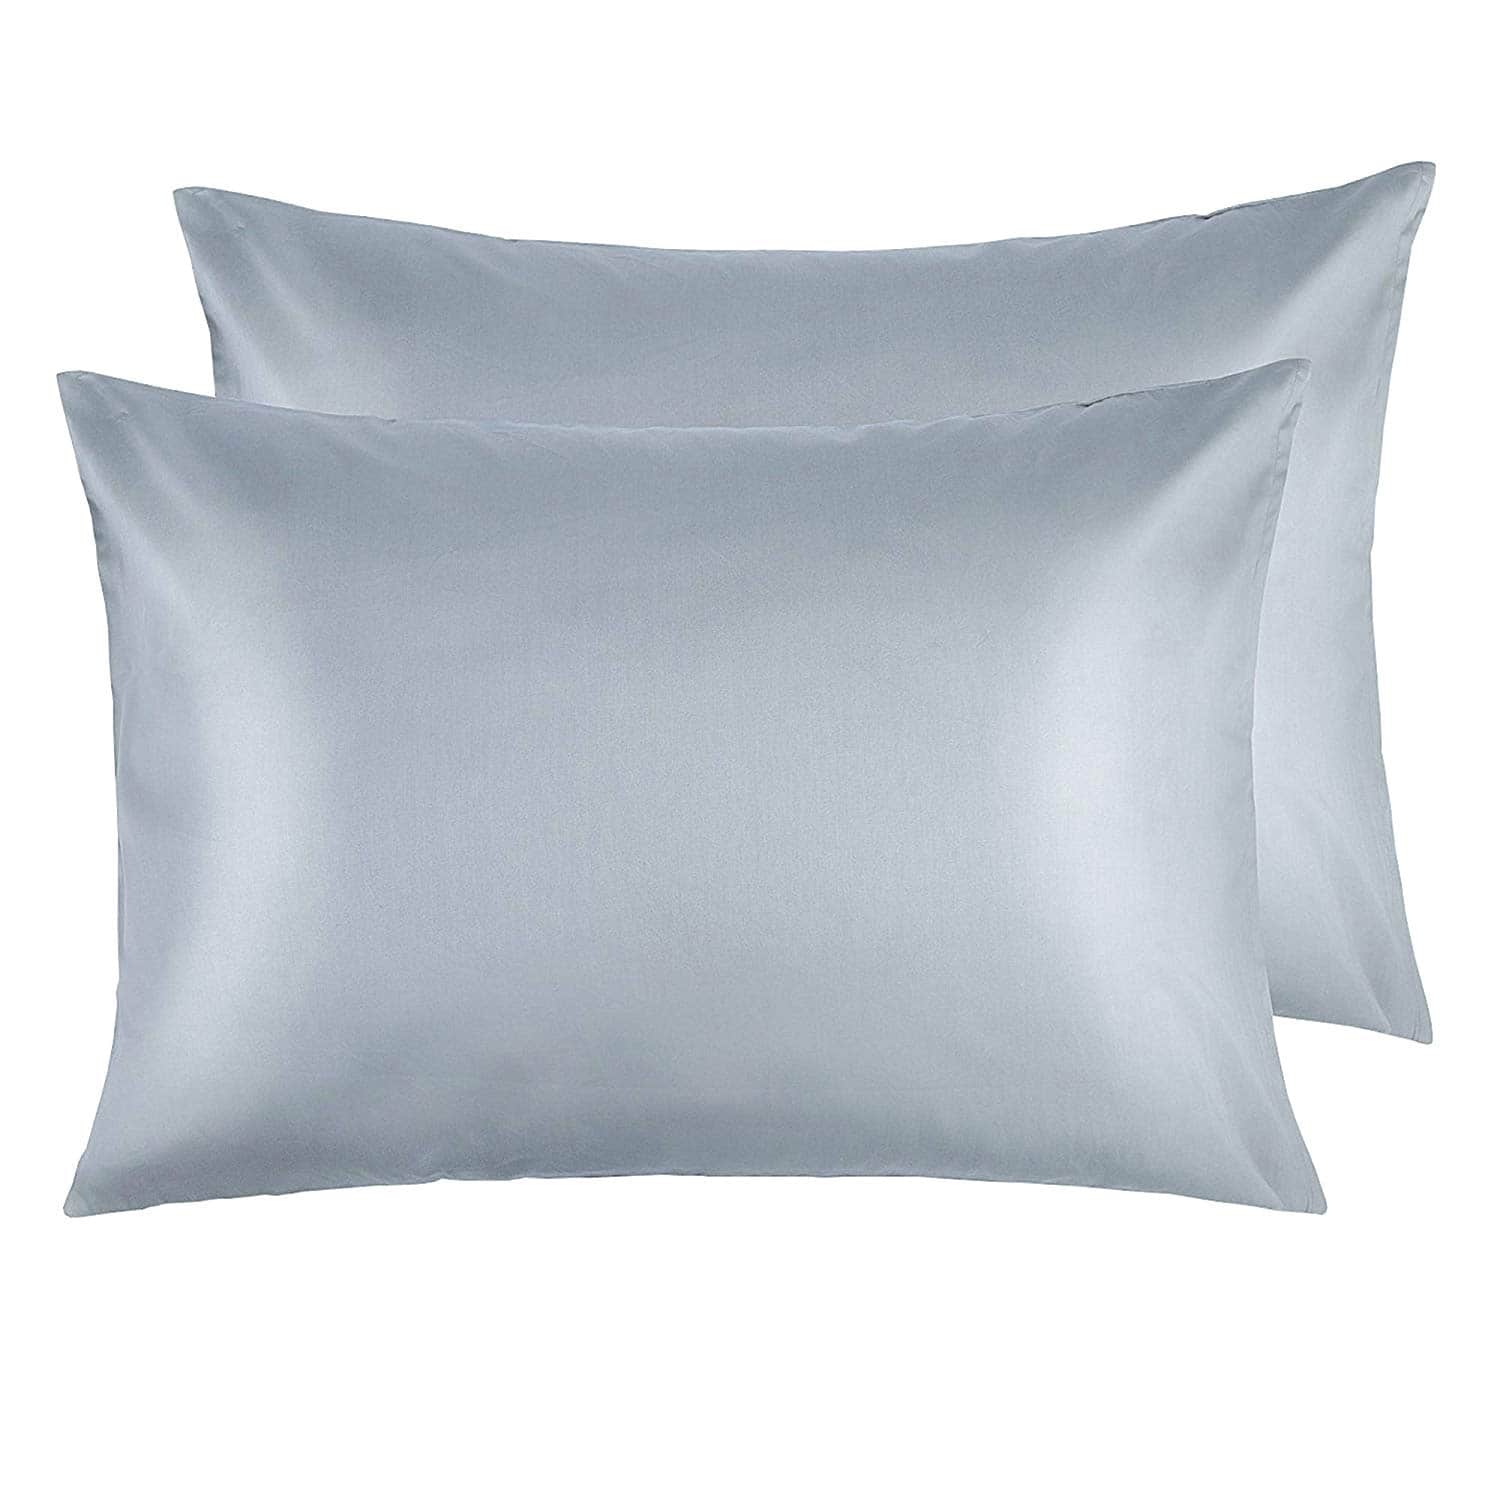 NTBAY Zippered Satin Standard Pillowcases 20 x 26 Inches, Grey  $7.99 + FSSS